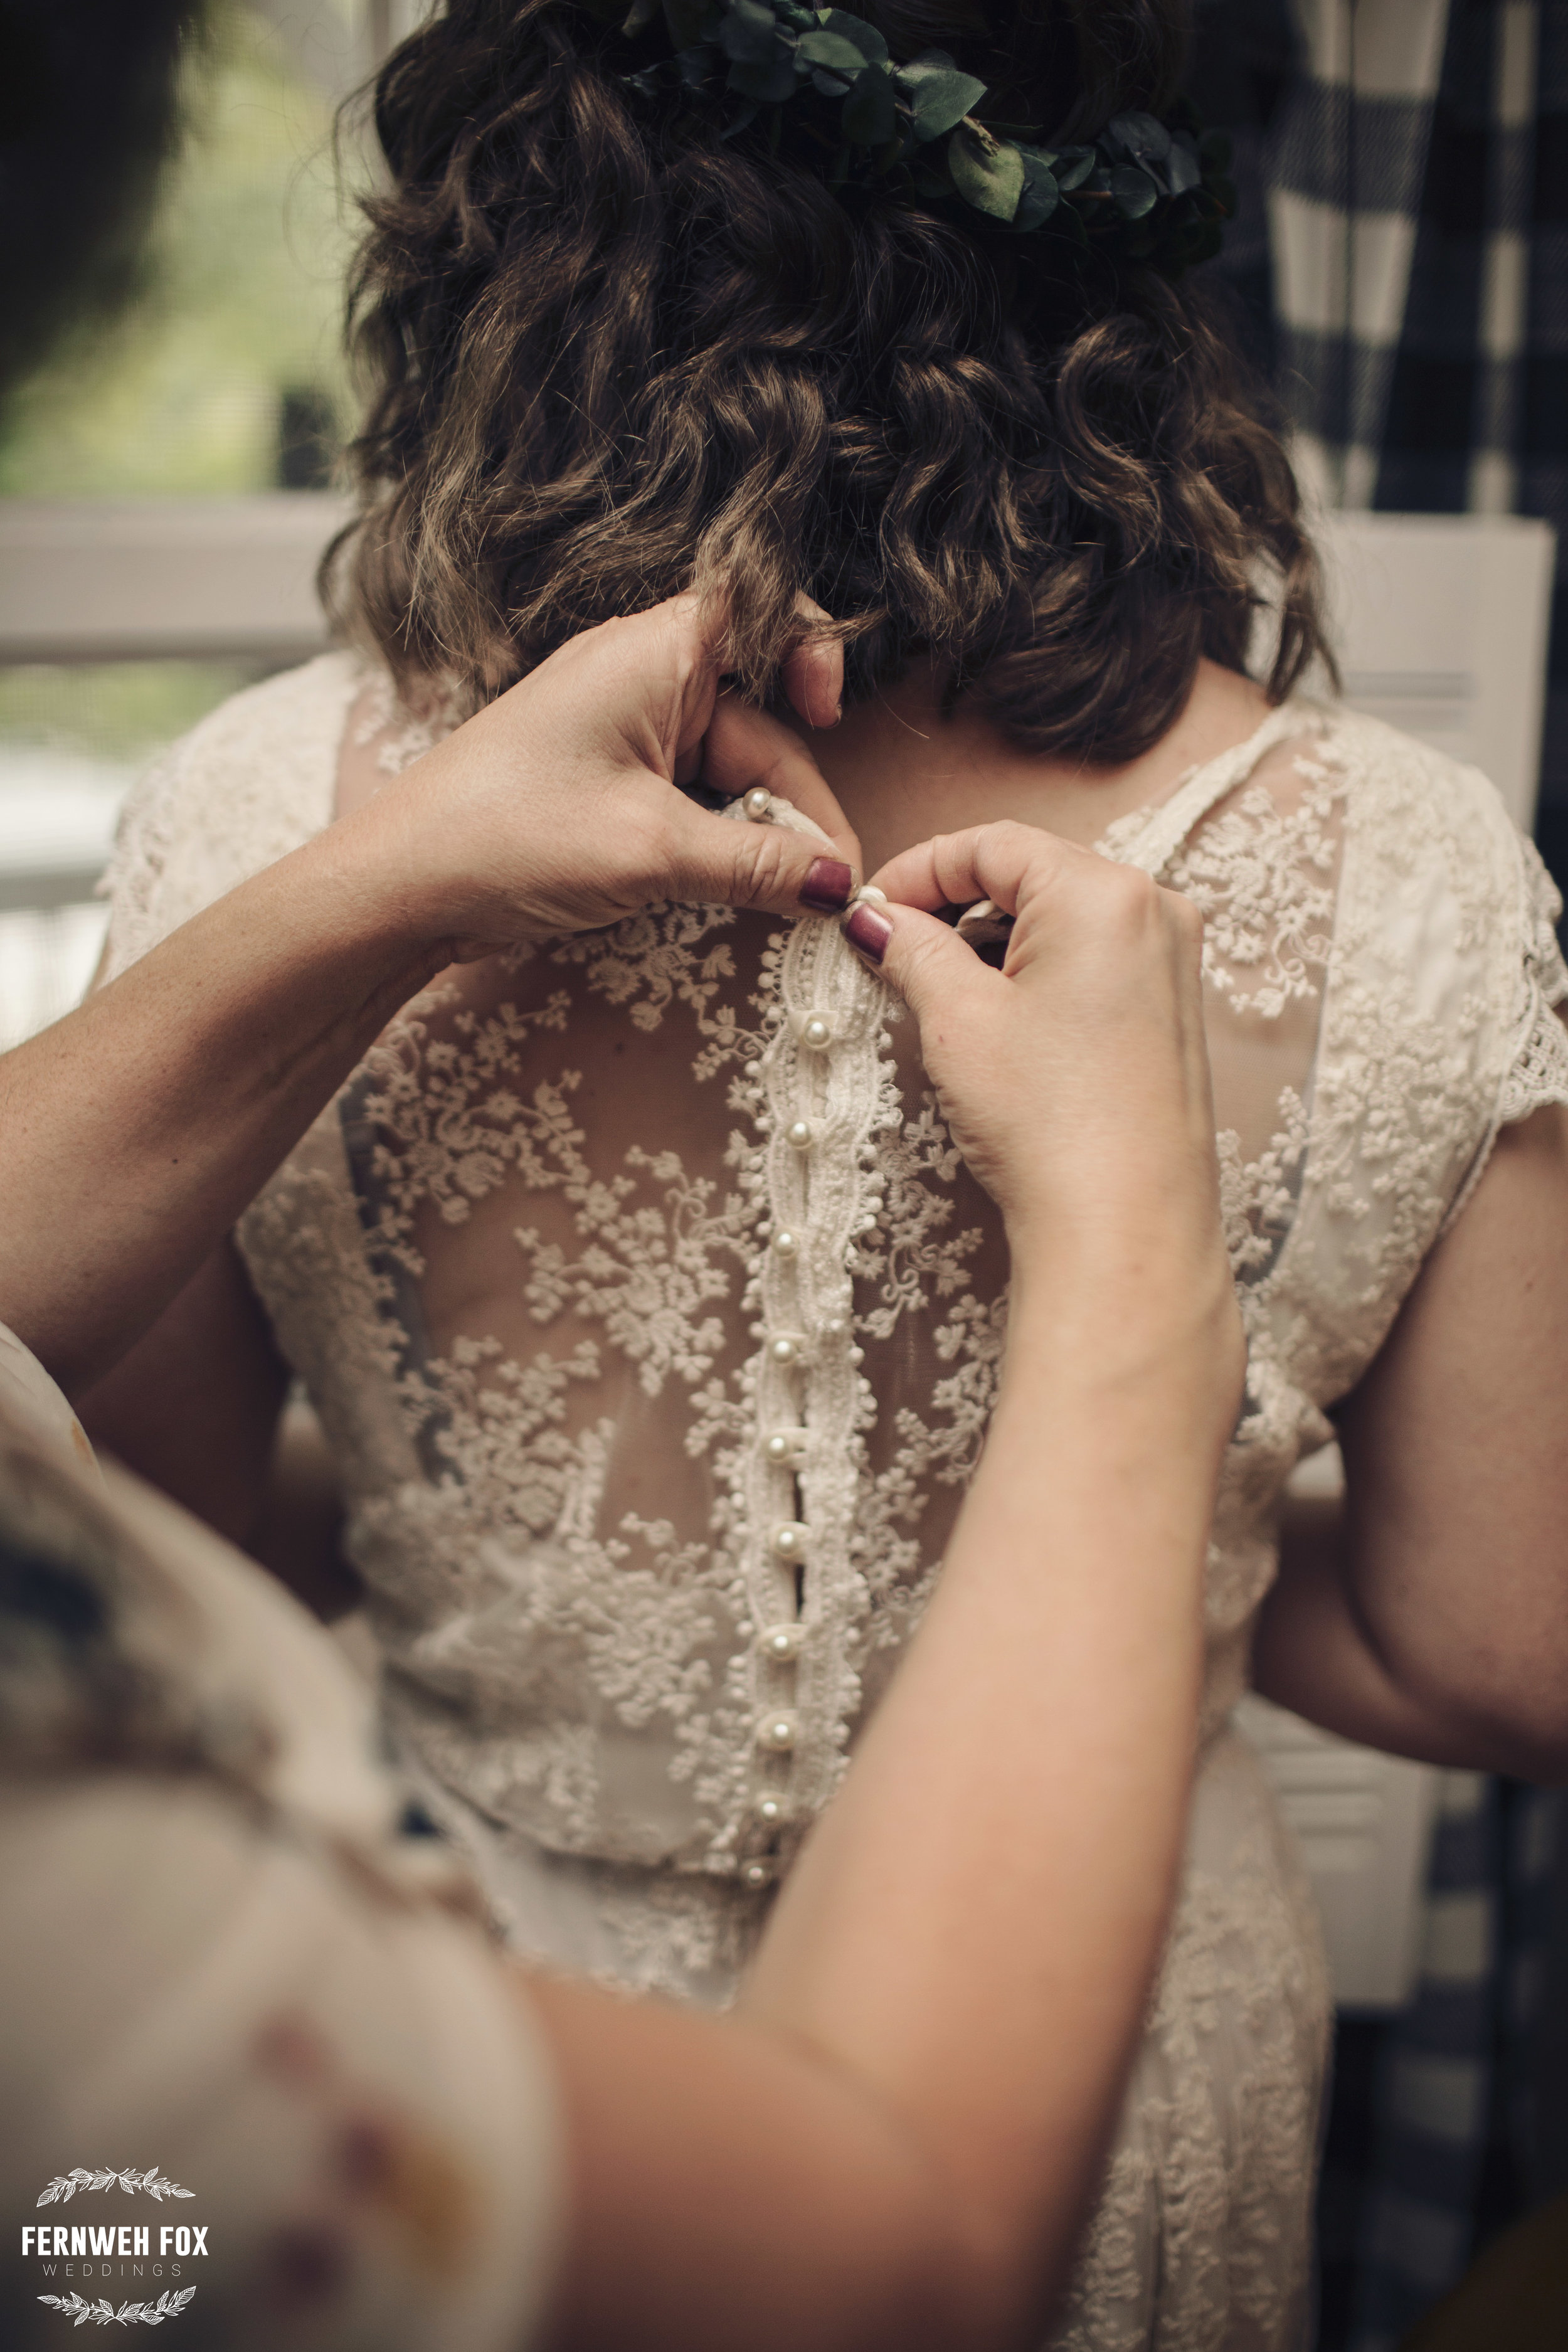 The powerful, long-awaited moment of a mother finally dressing her daughter on her wedding day. Julie built this dress for her daughter's wedding day. I can't think of a more treasured gift.